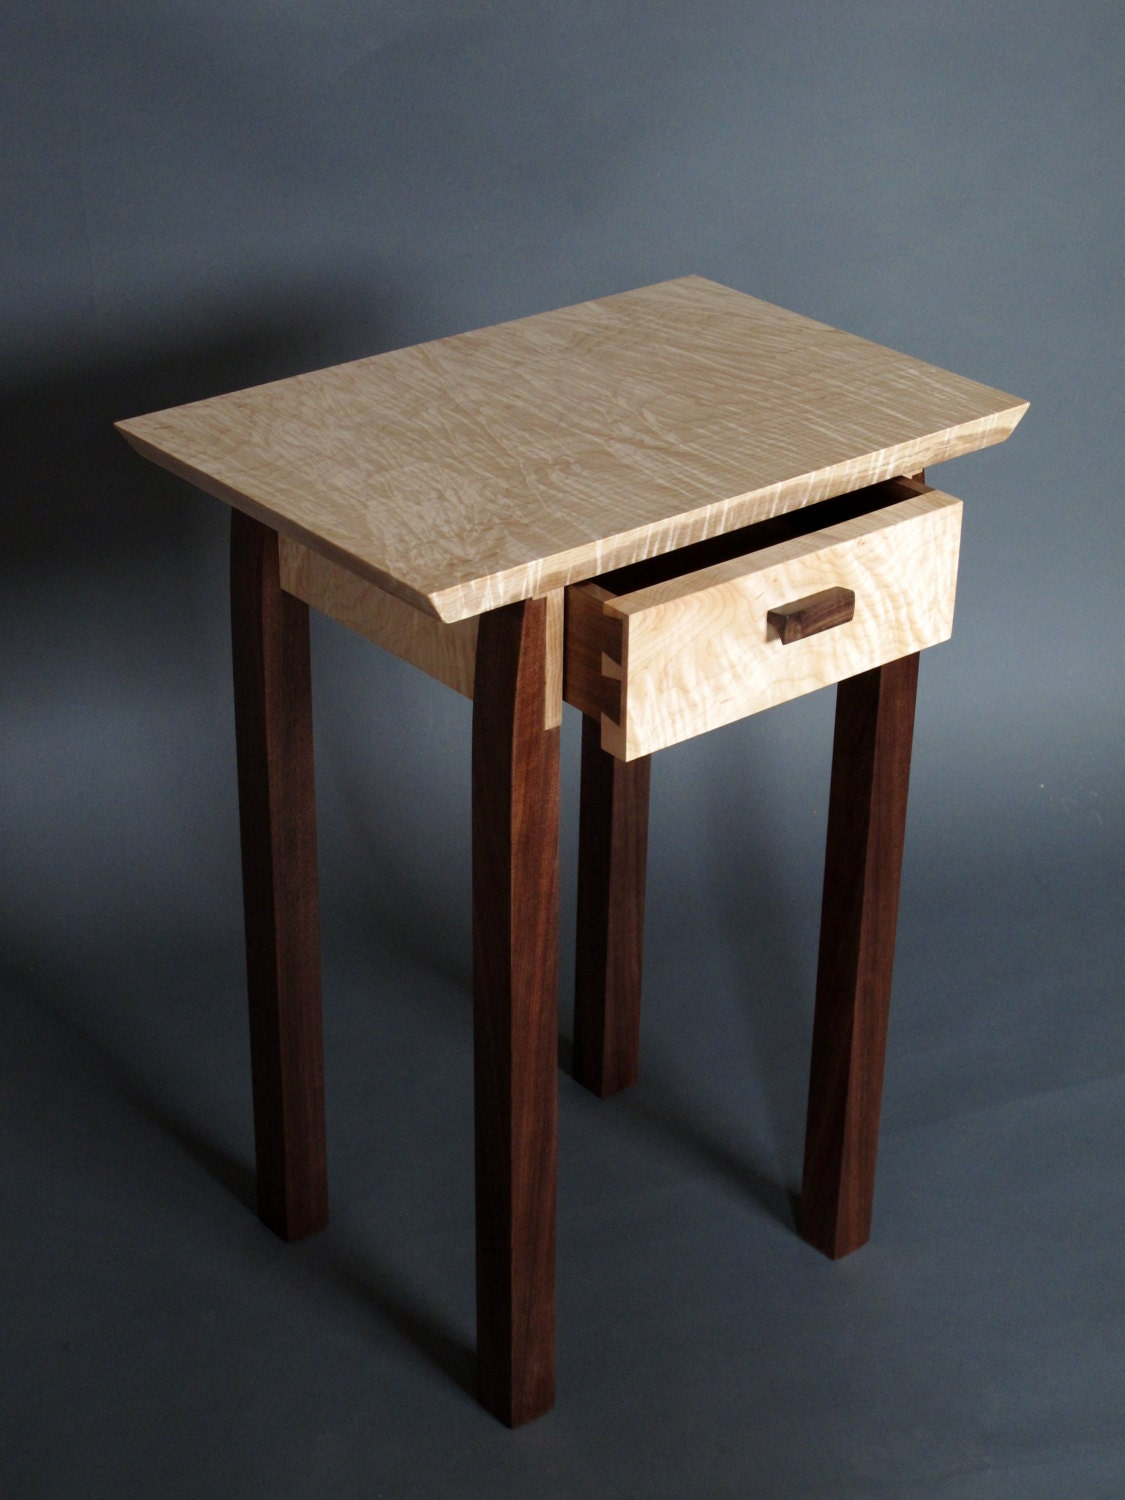 Bed side table with drawer narrow wooden table contemporary for Small wooden side table